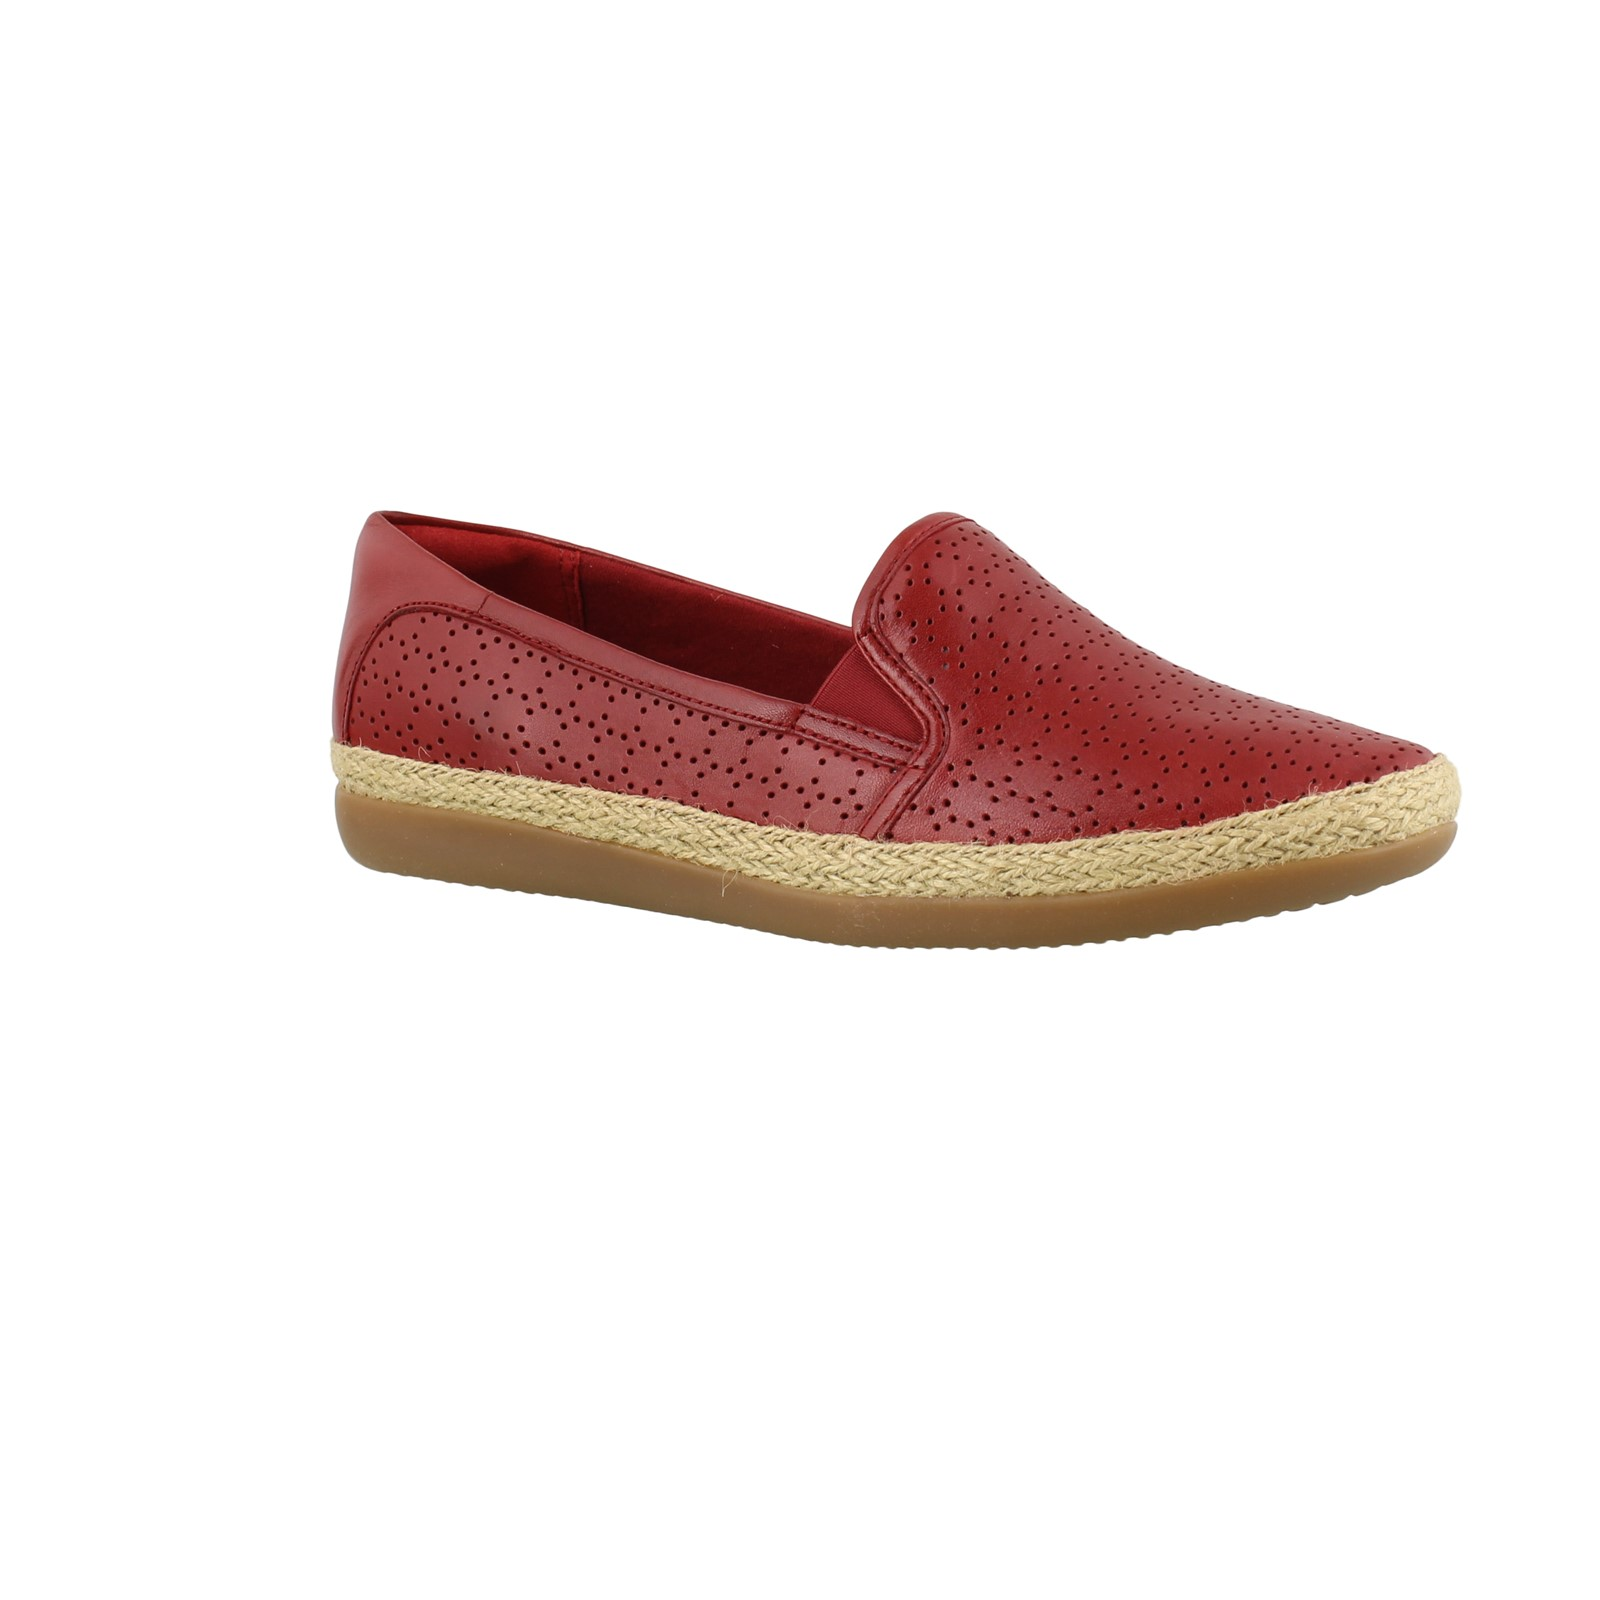 8702931372a7 ... Danelly Molly Slip on Shoes. Previous. default view · 2 · 3 · 360-03 ...